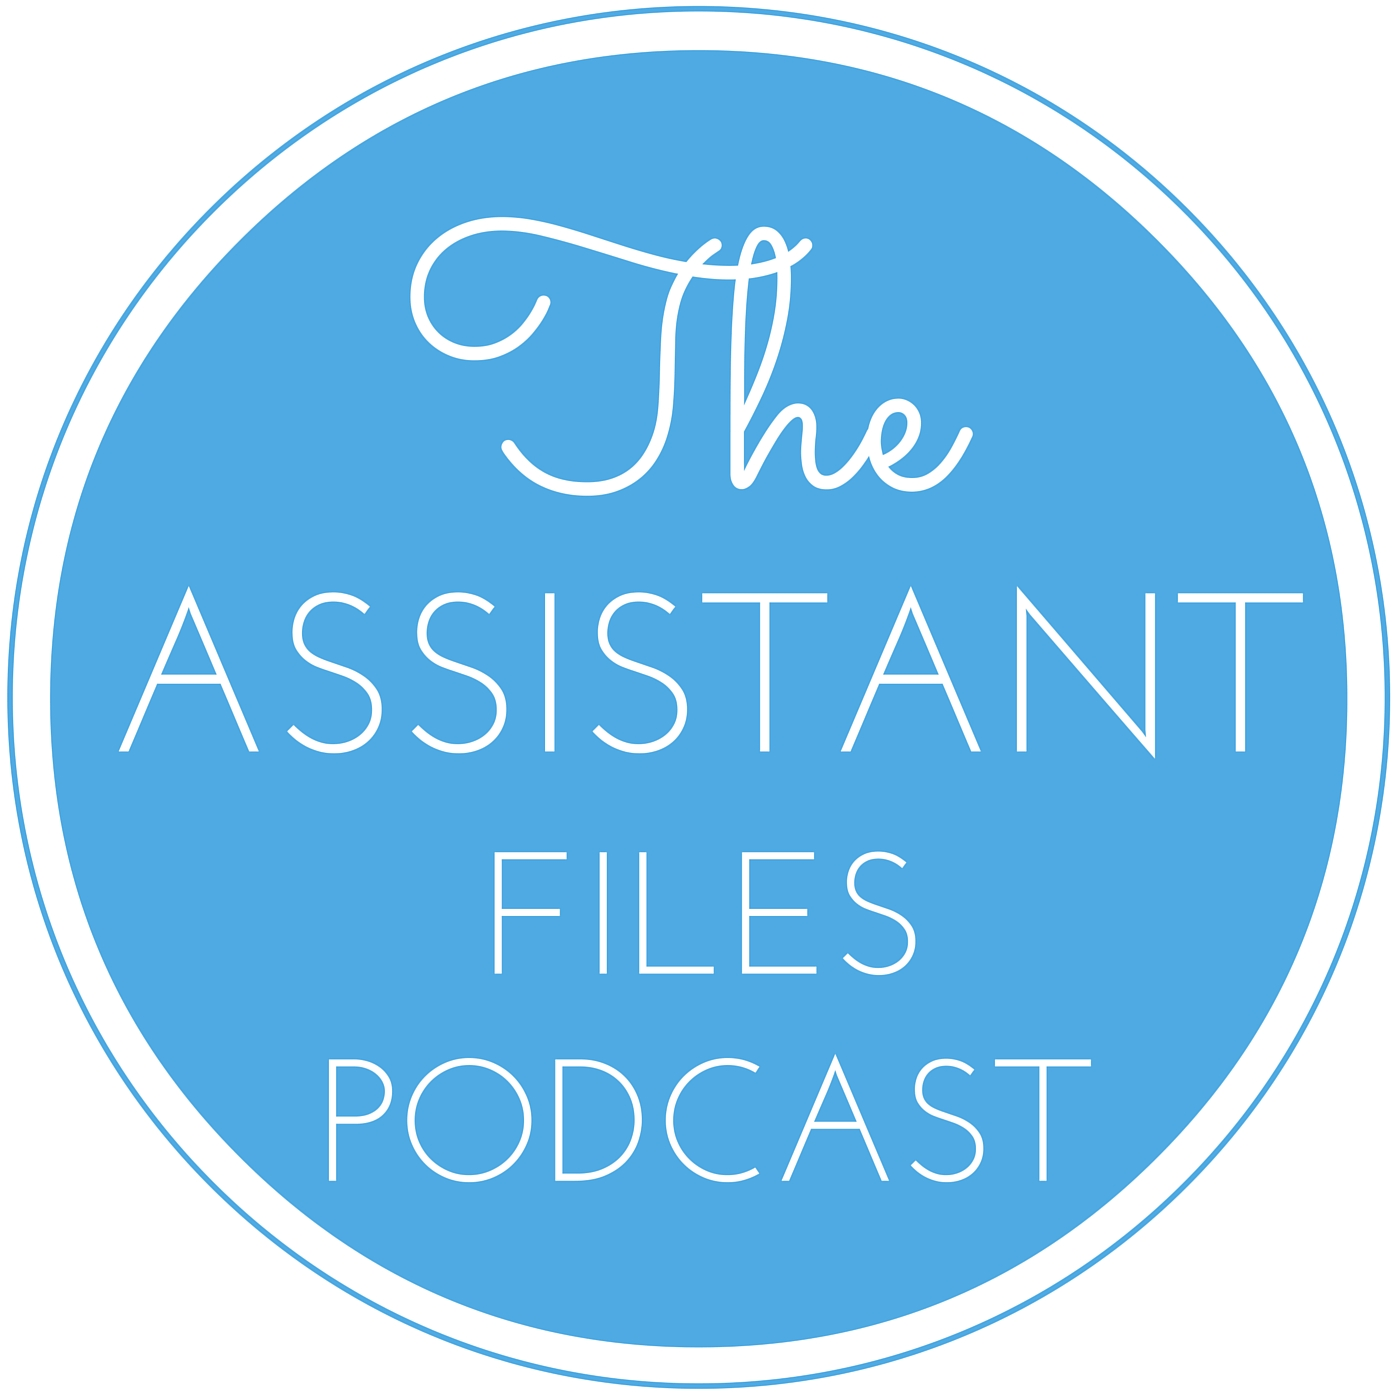 The Assistant Files Podcast